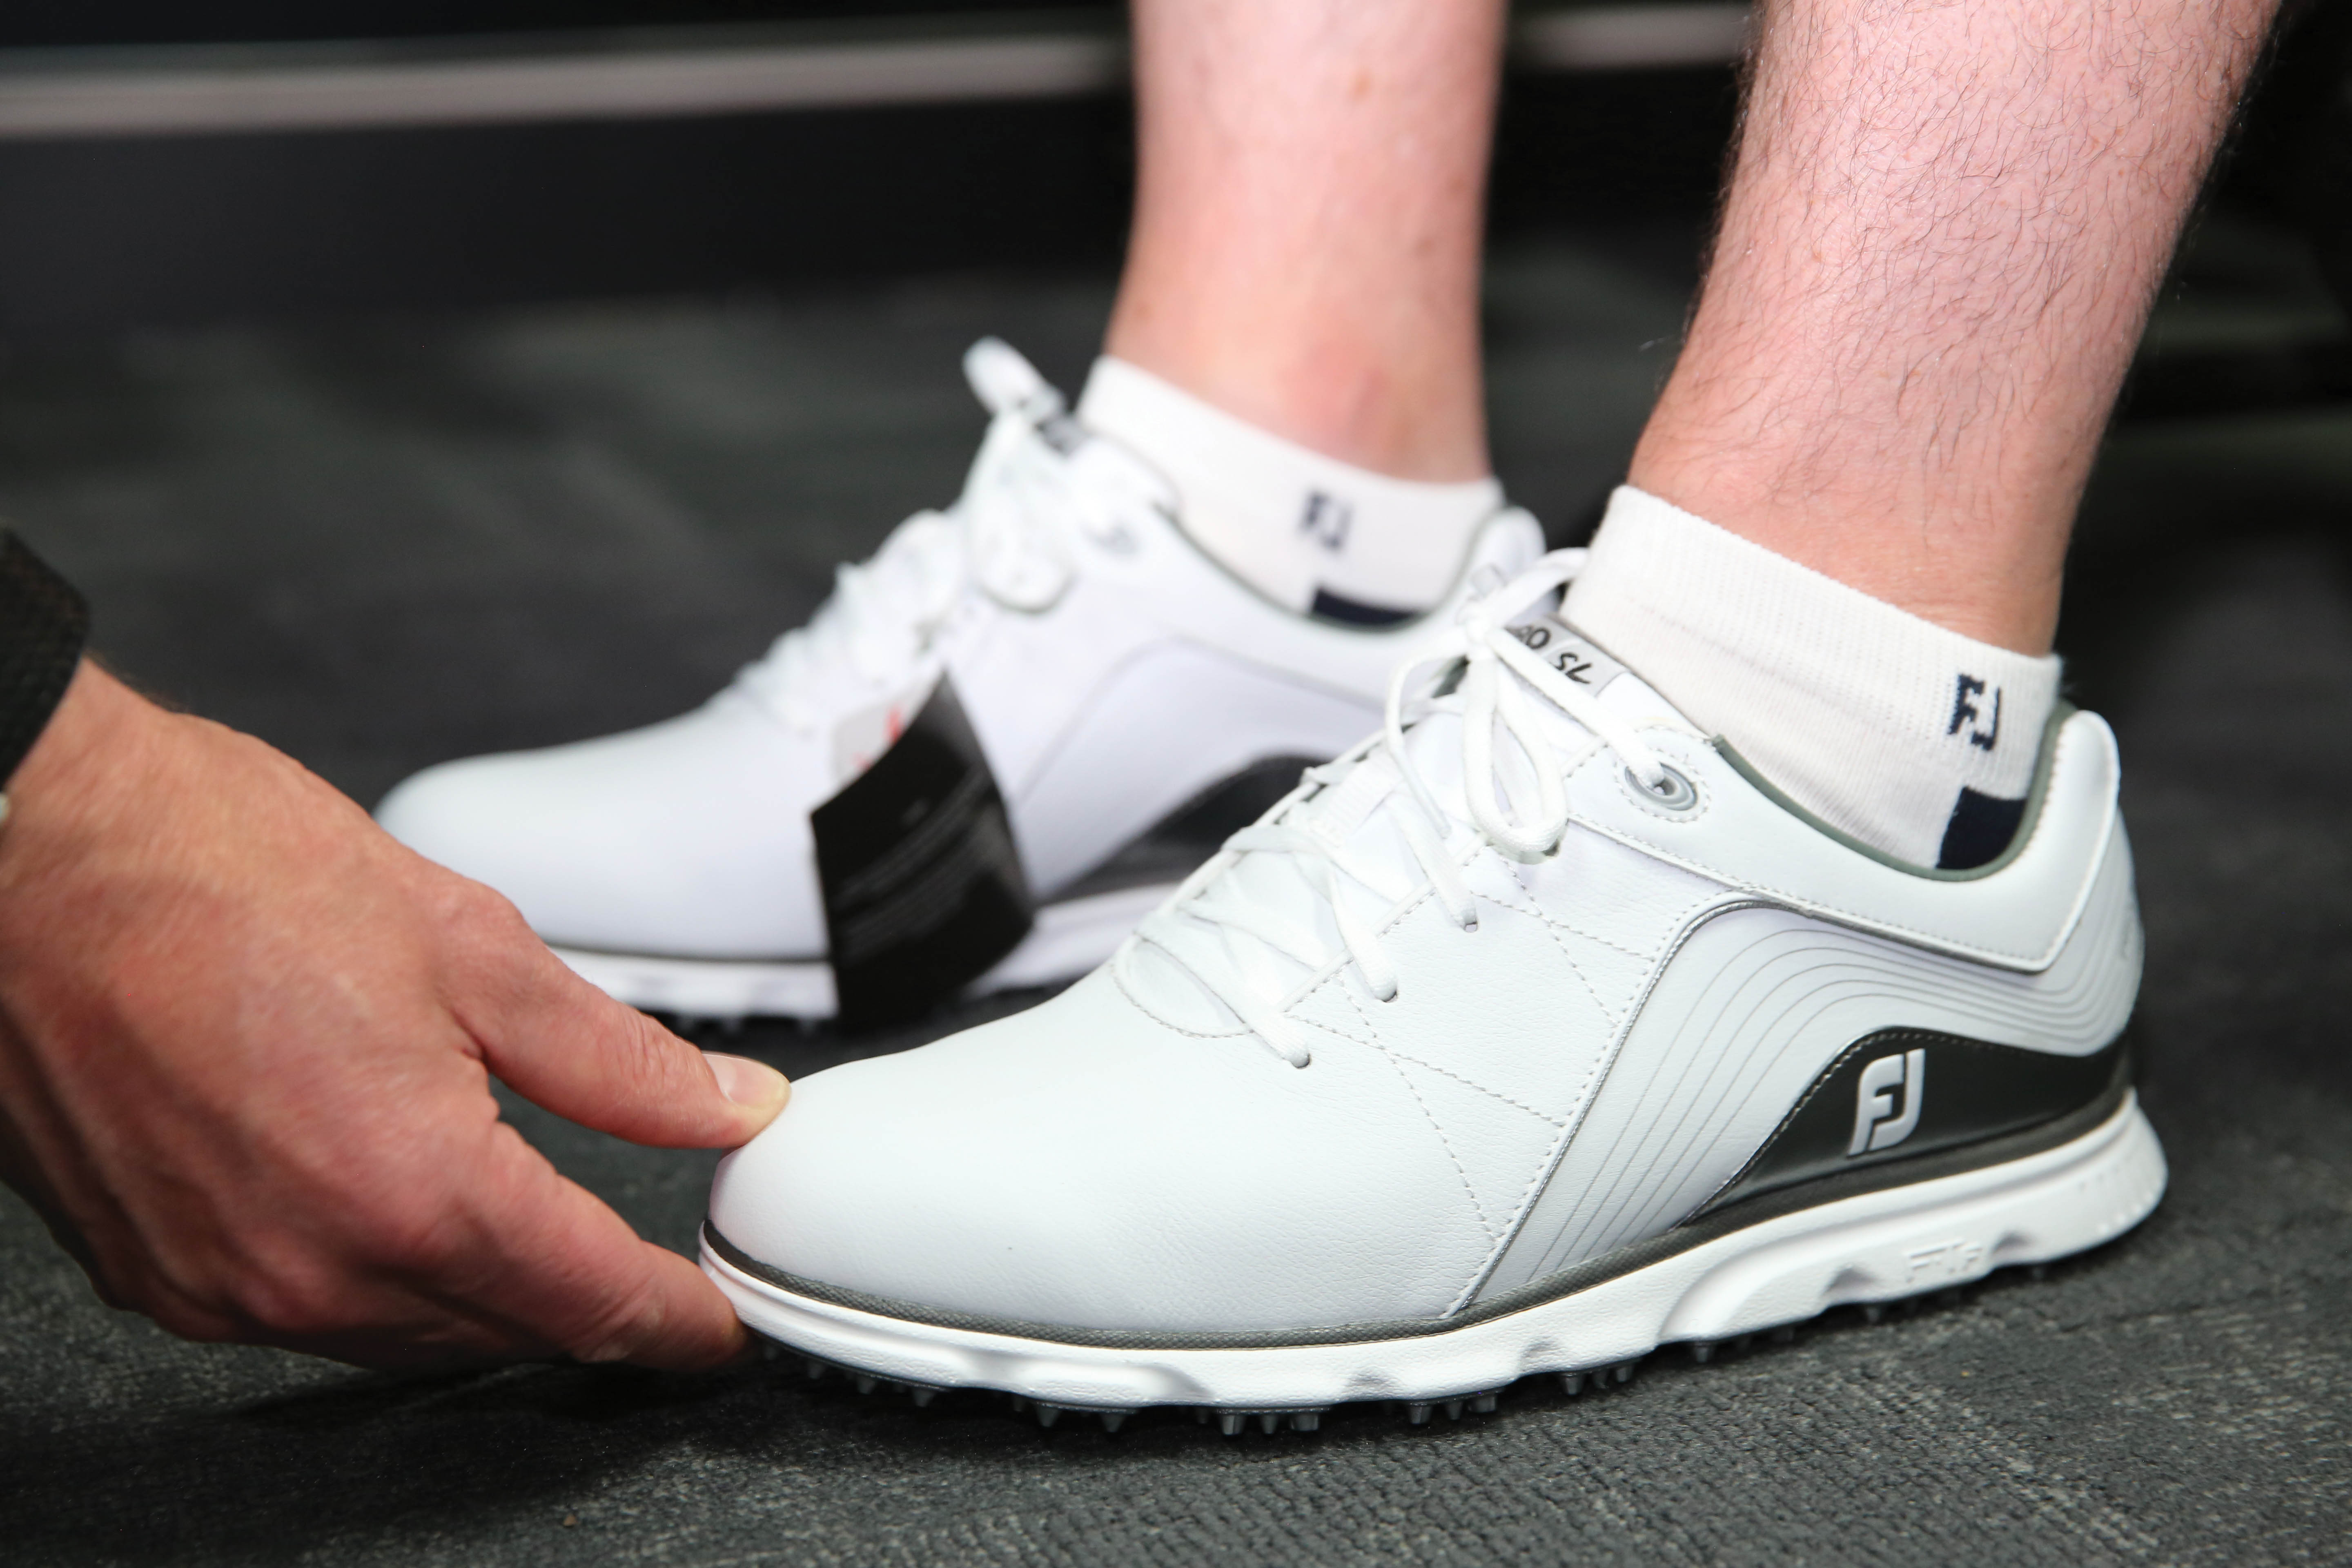 If the shoe fits: A visit to FootJoy's